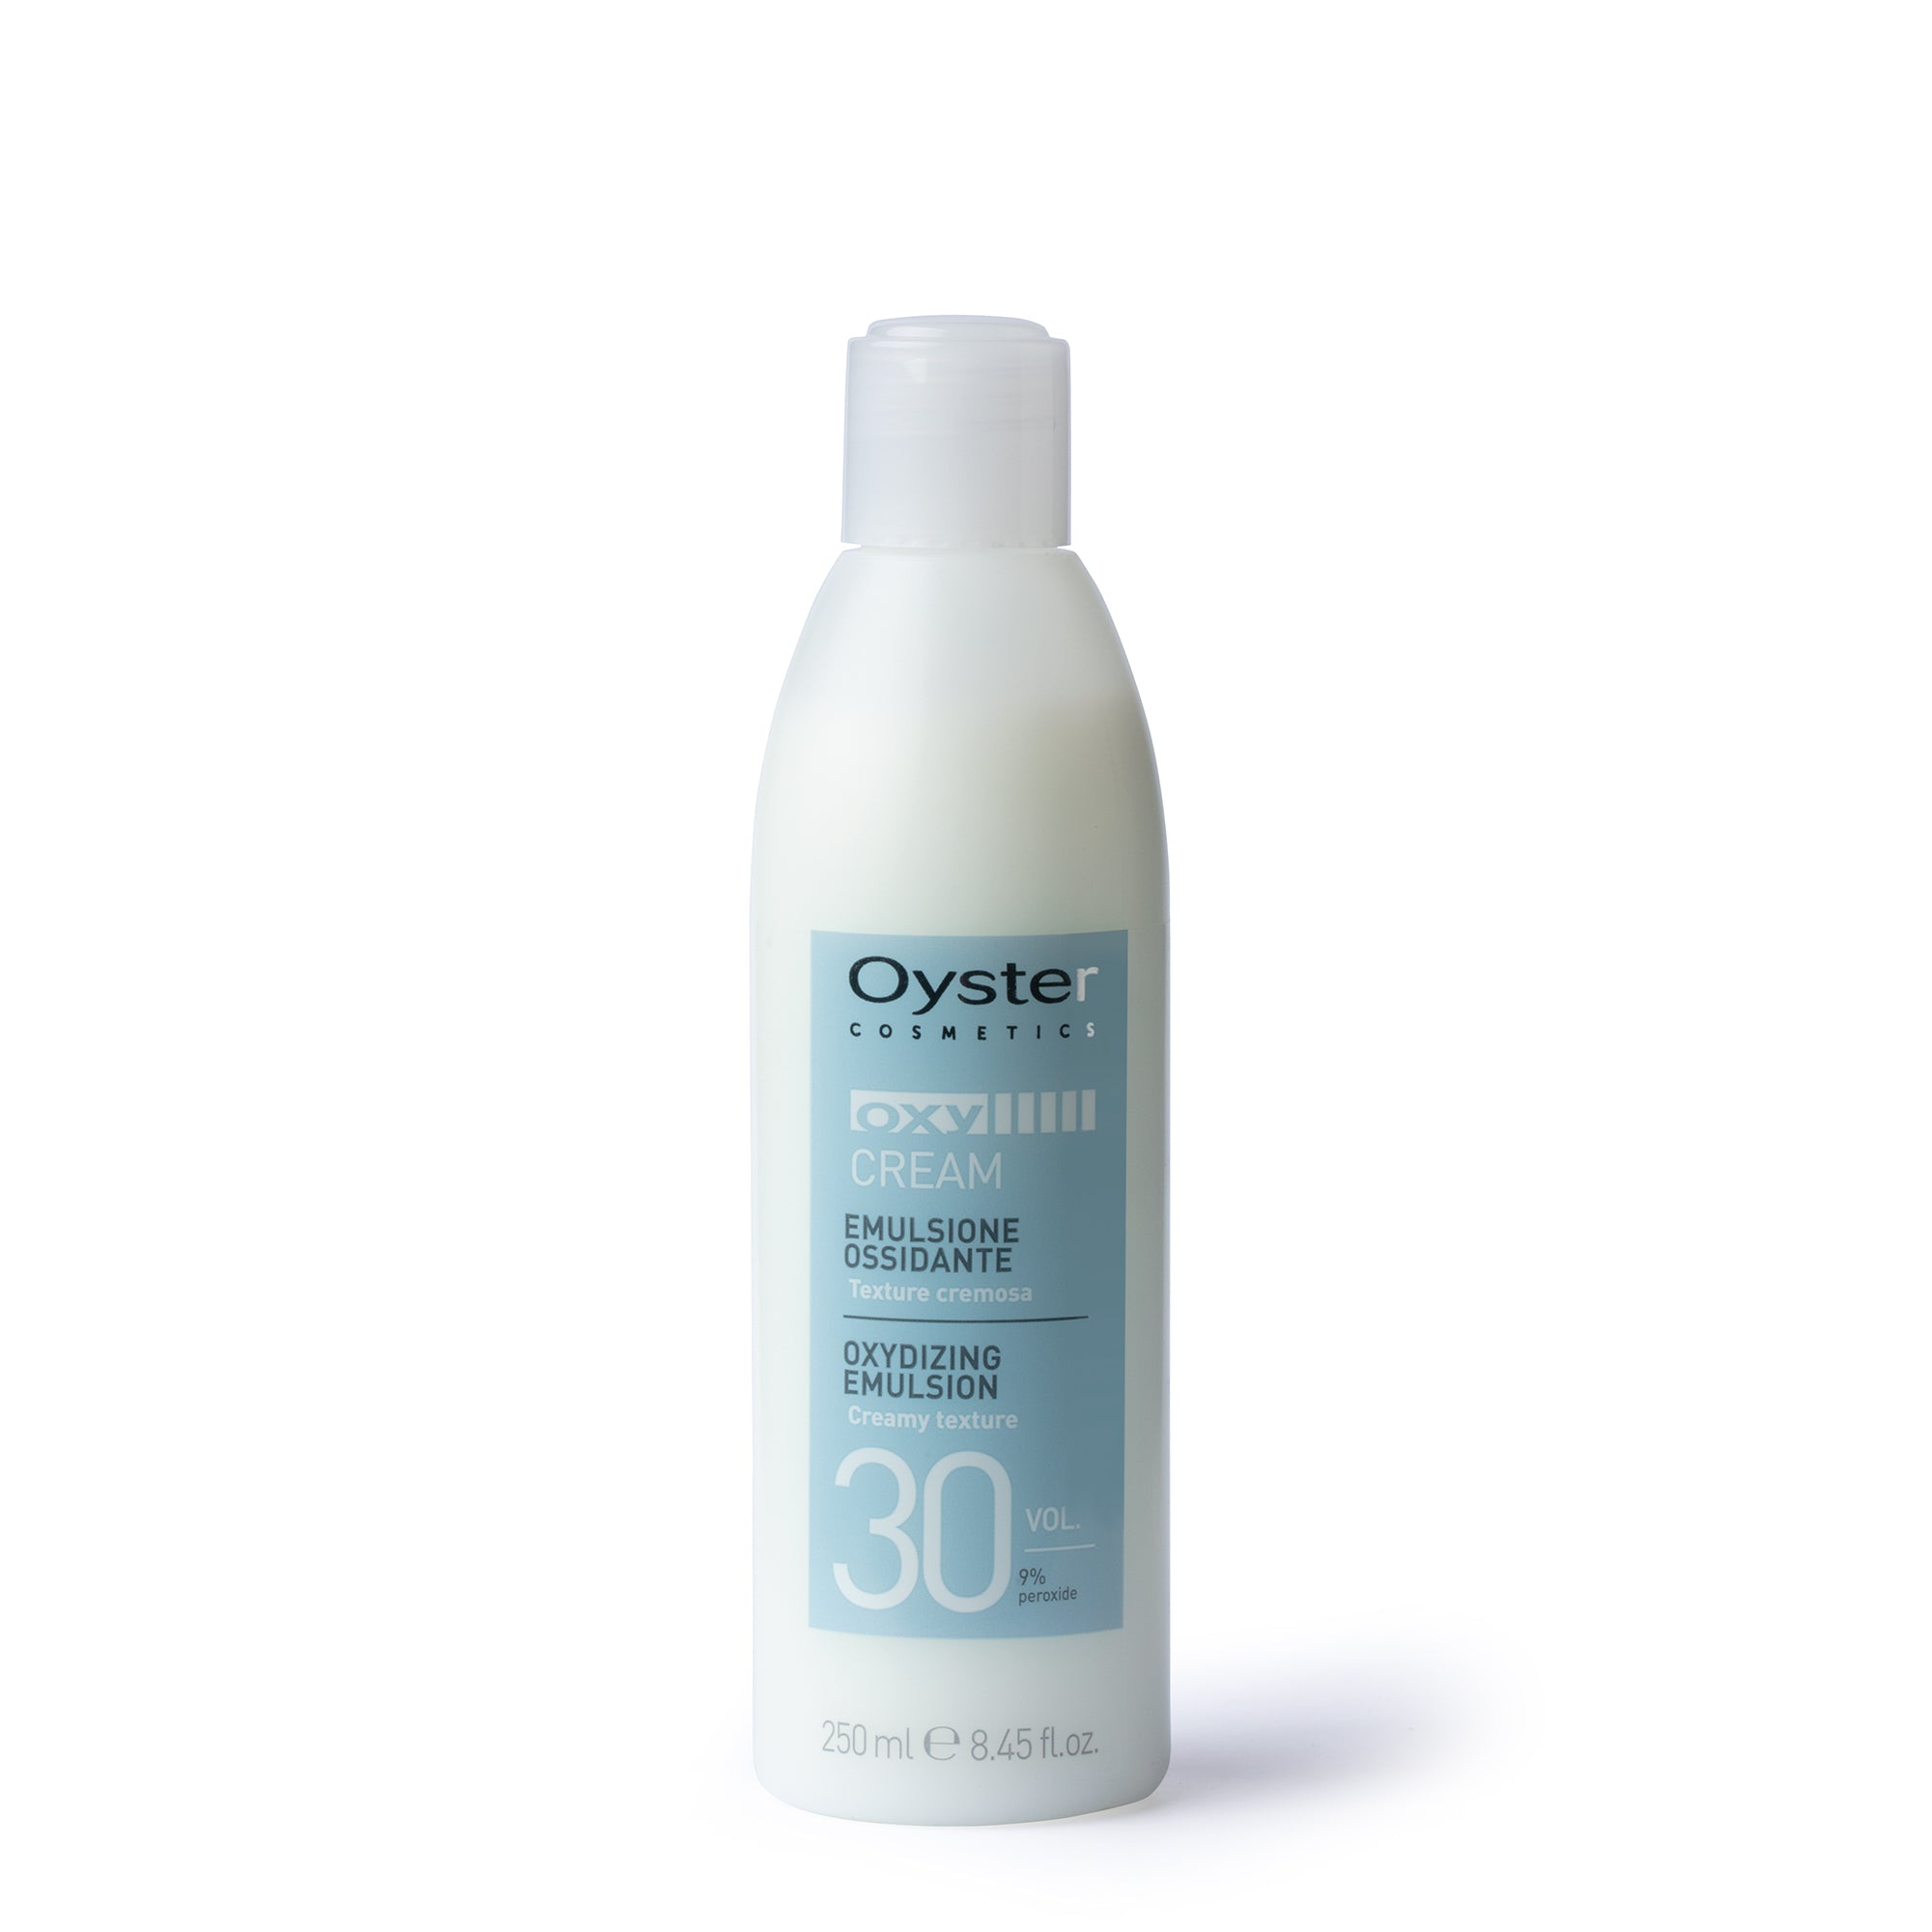 Oyster Oxy Cream Developer | 30 vol - 9% Peroxide - SH Salons